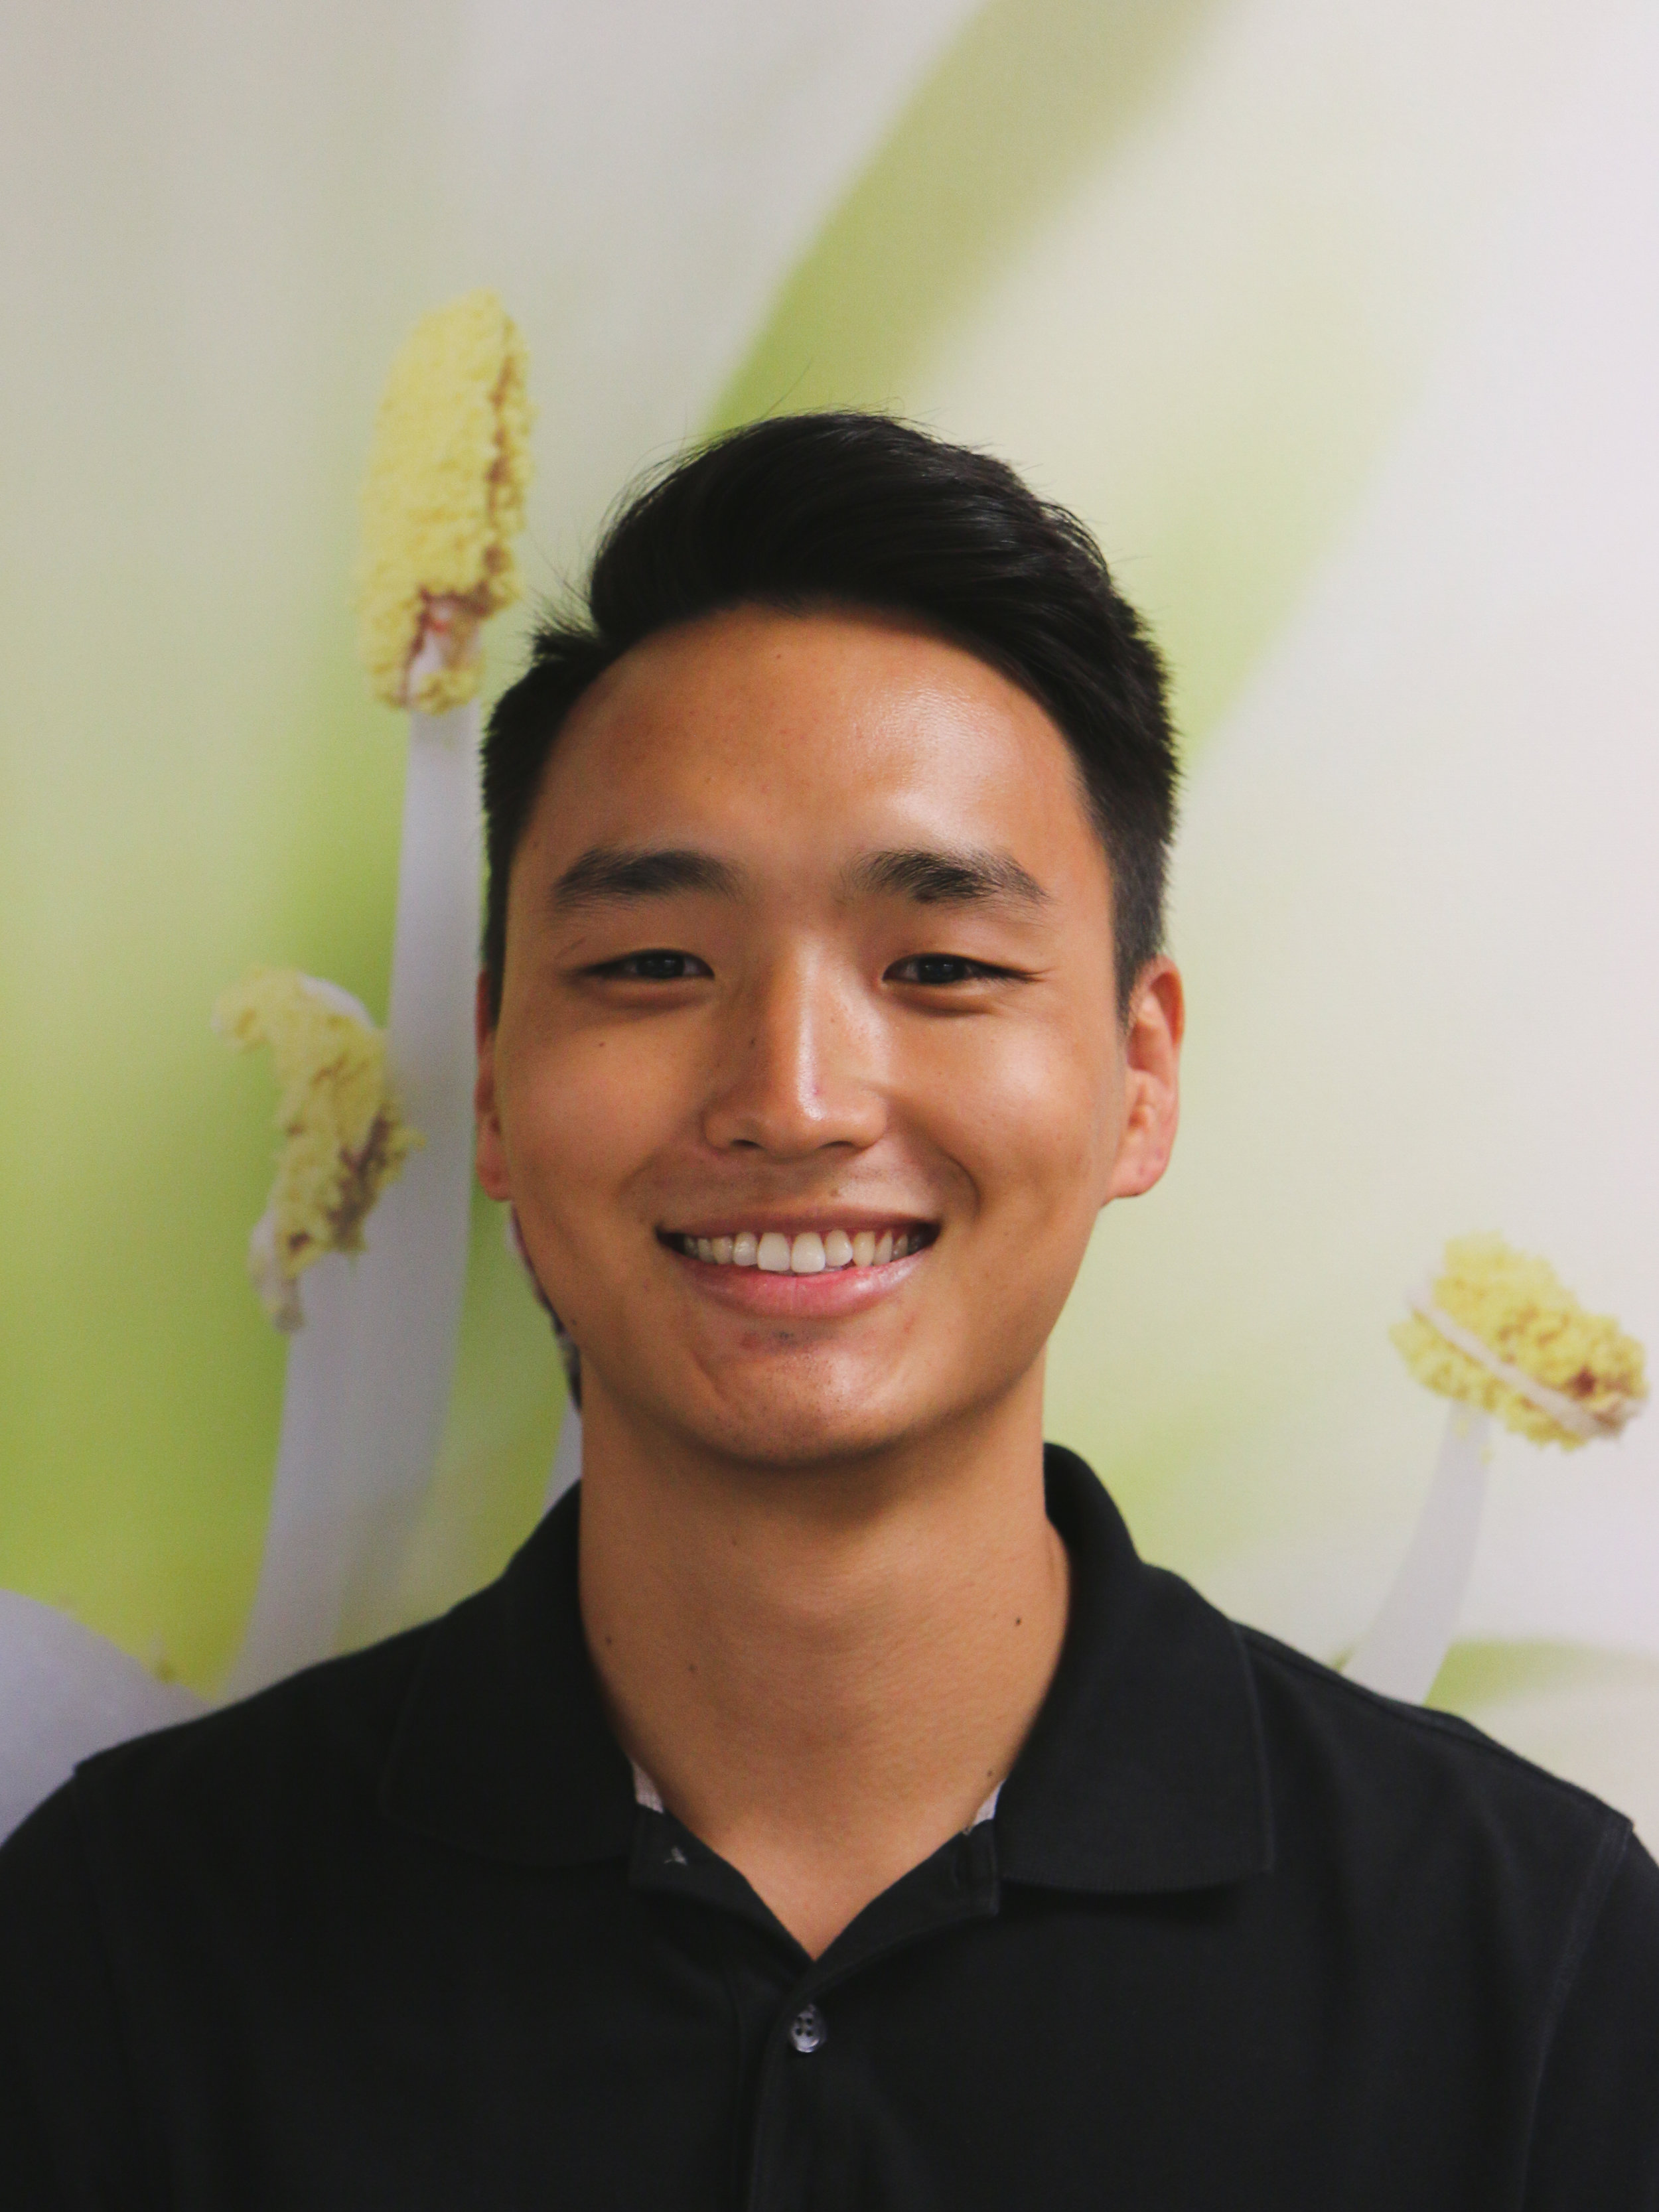 PUBLIC SERVICE CO-CHAIR    Michael Choe   Social Media Specialist Hawaiian Electric    Why did you join Ad 2?   As an English major with no advertising, marketing, or business background, I was looking for a way to get my foot in the door. A friend recommended Ad 2 so I contacted Trey and he invited me to the next Water Cooler event. And that's where my journey started!